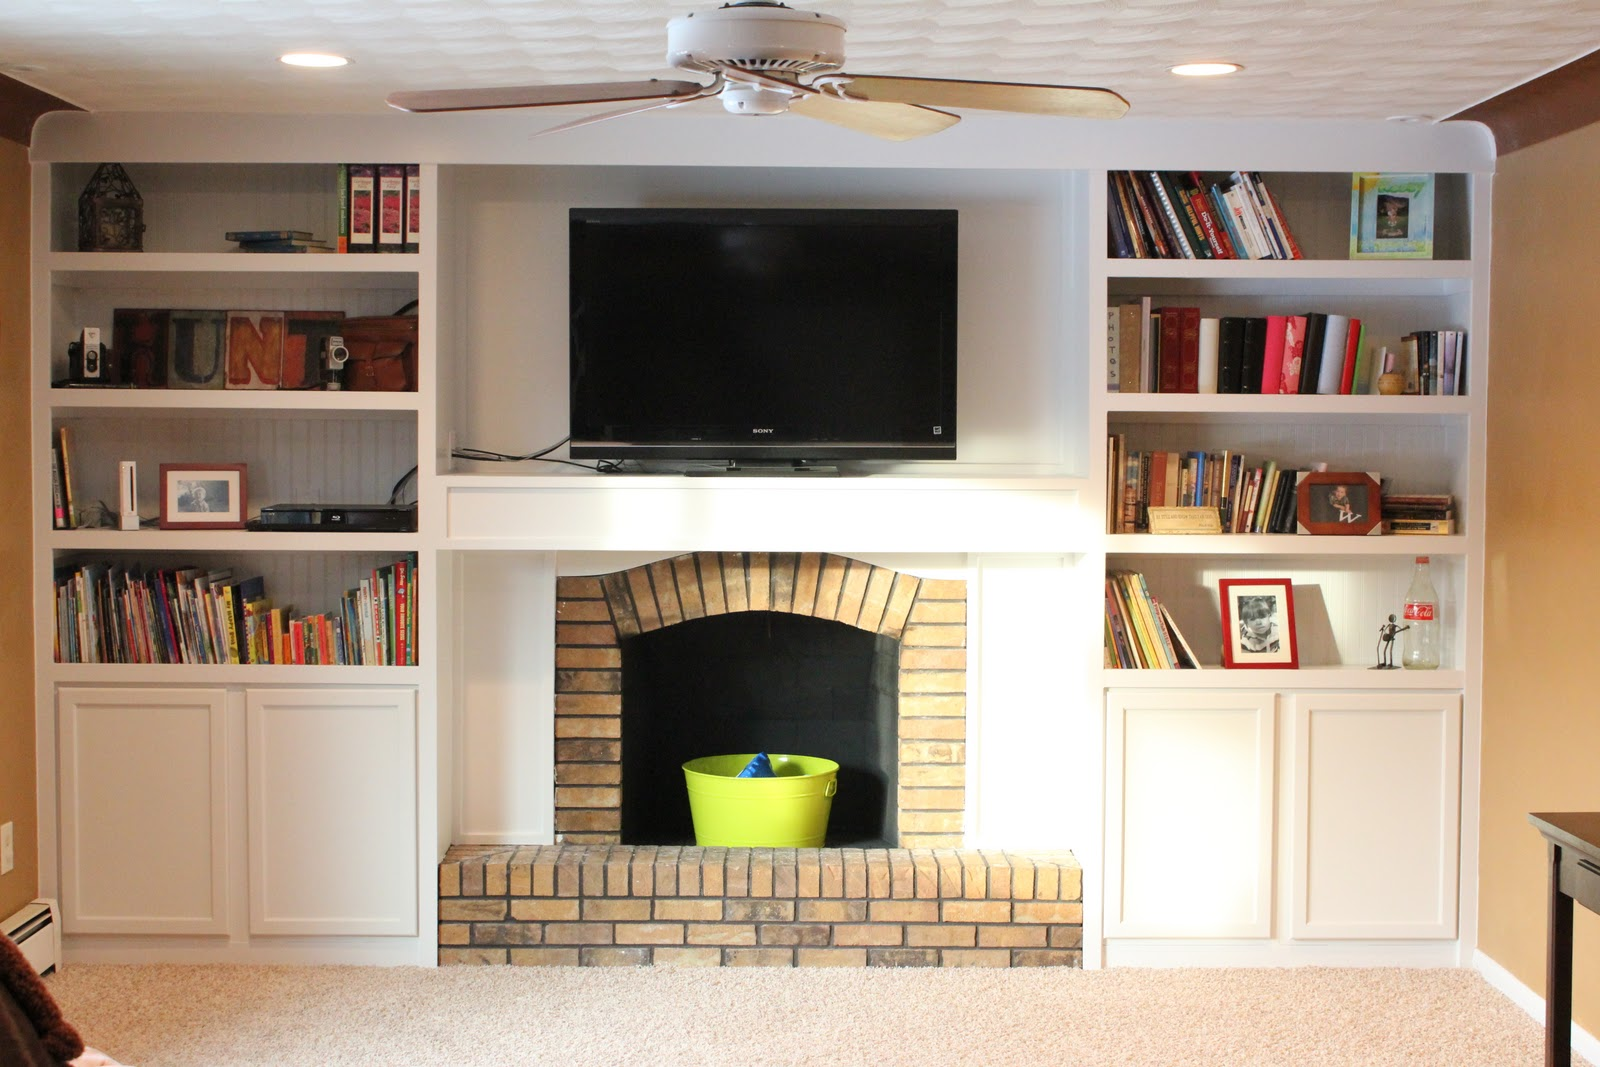 25 DIY Built In Shelving Ideas For Your Home